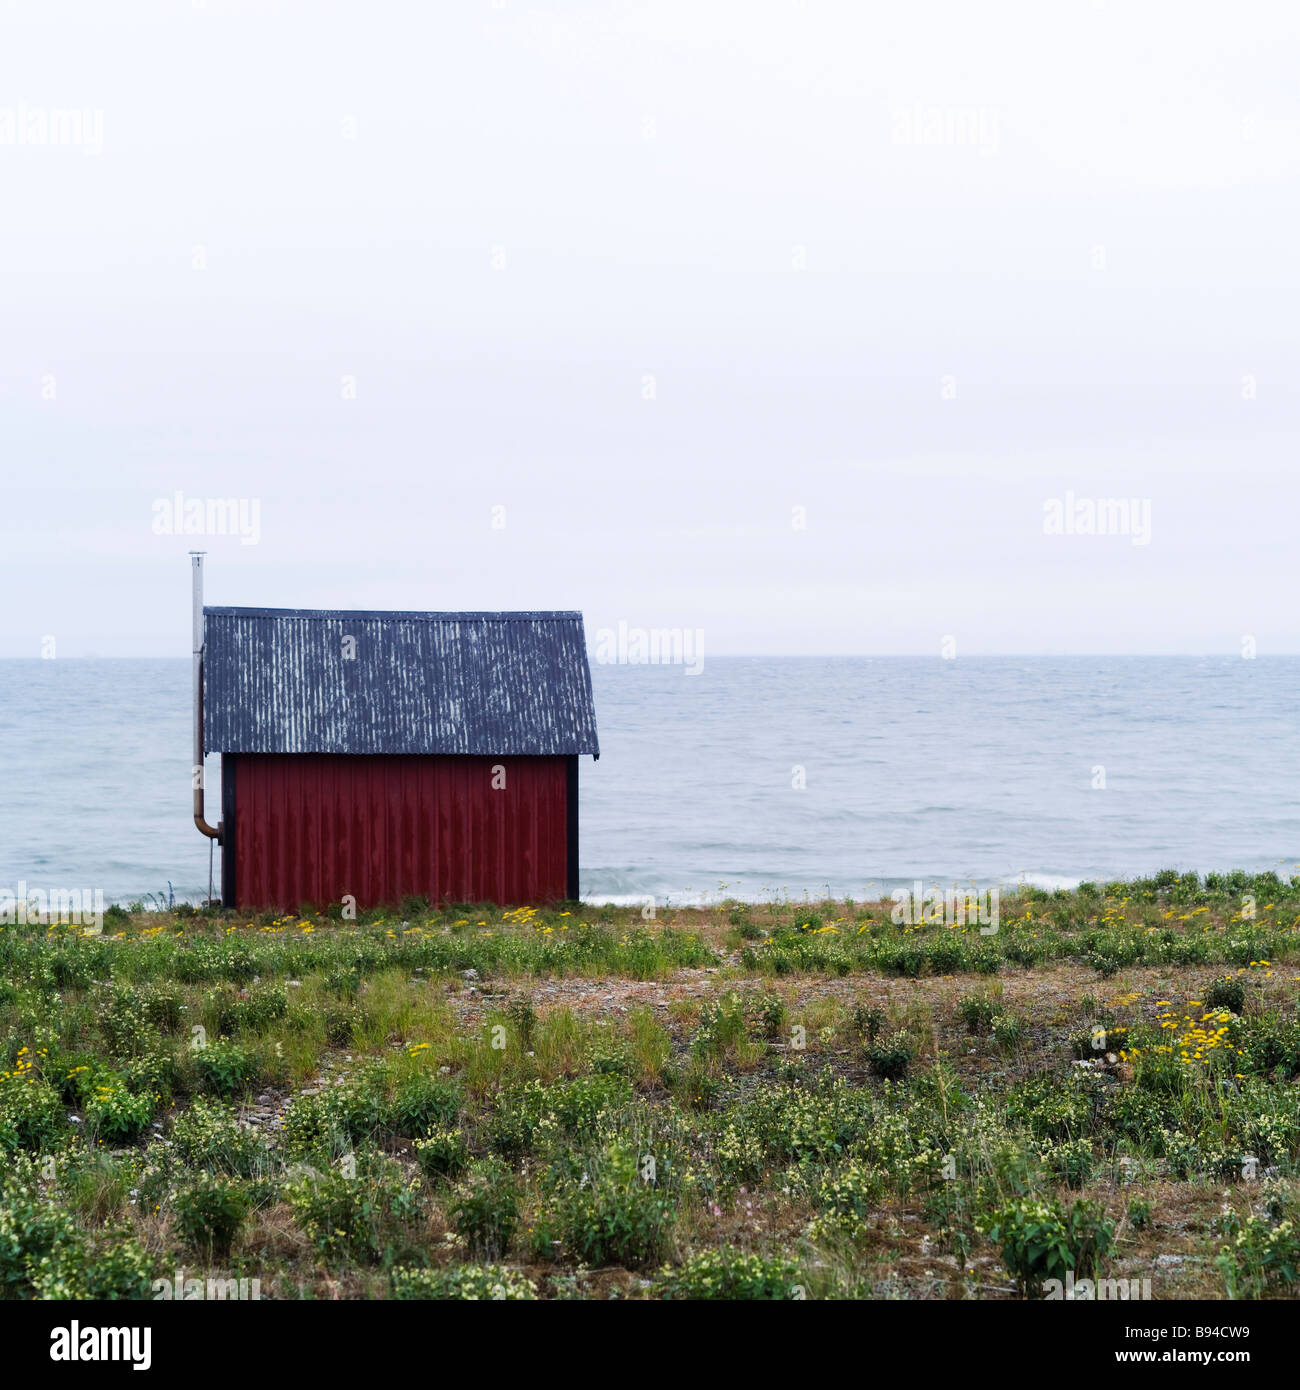 Red barn at the sea - Stock Image